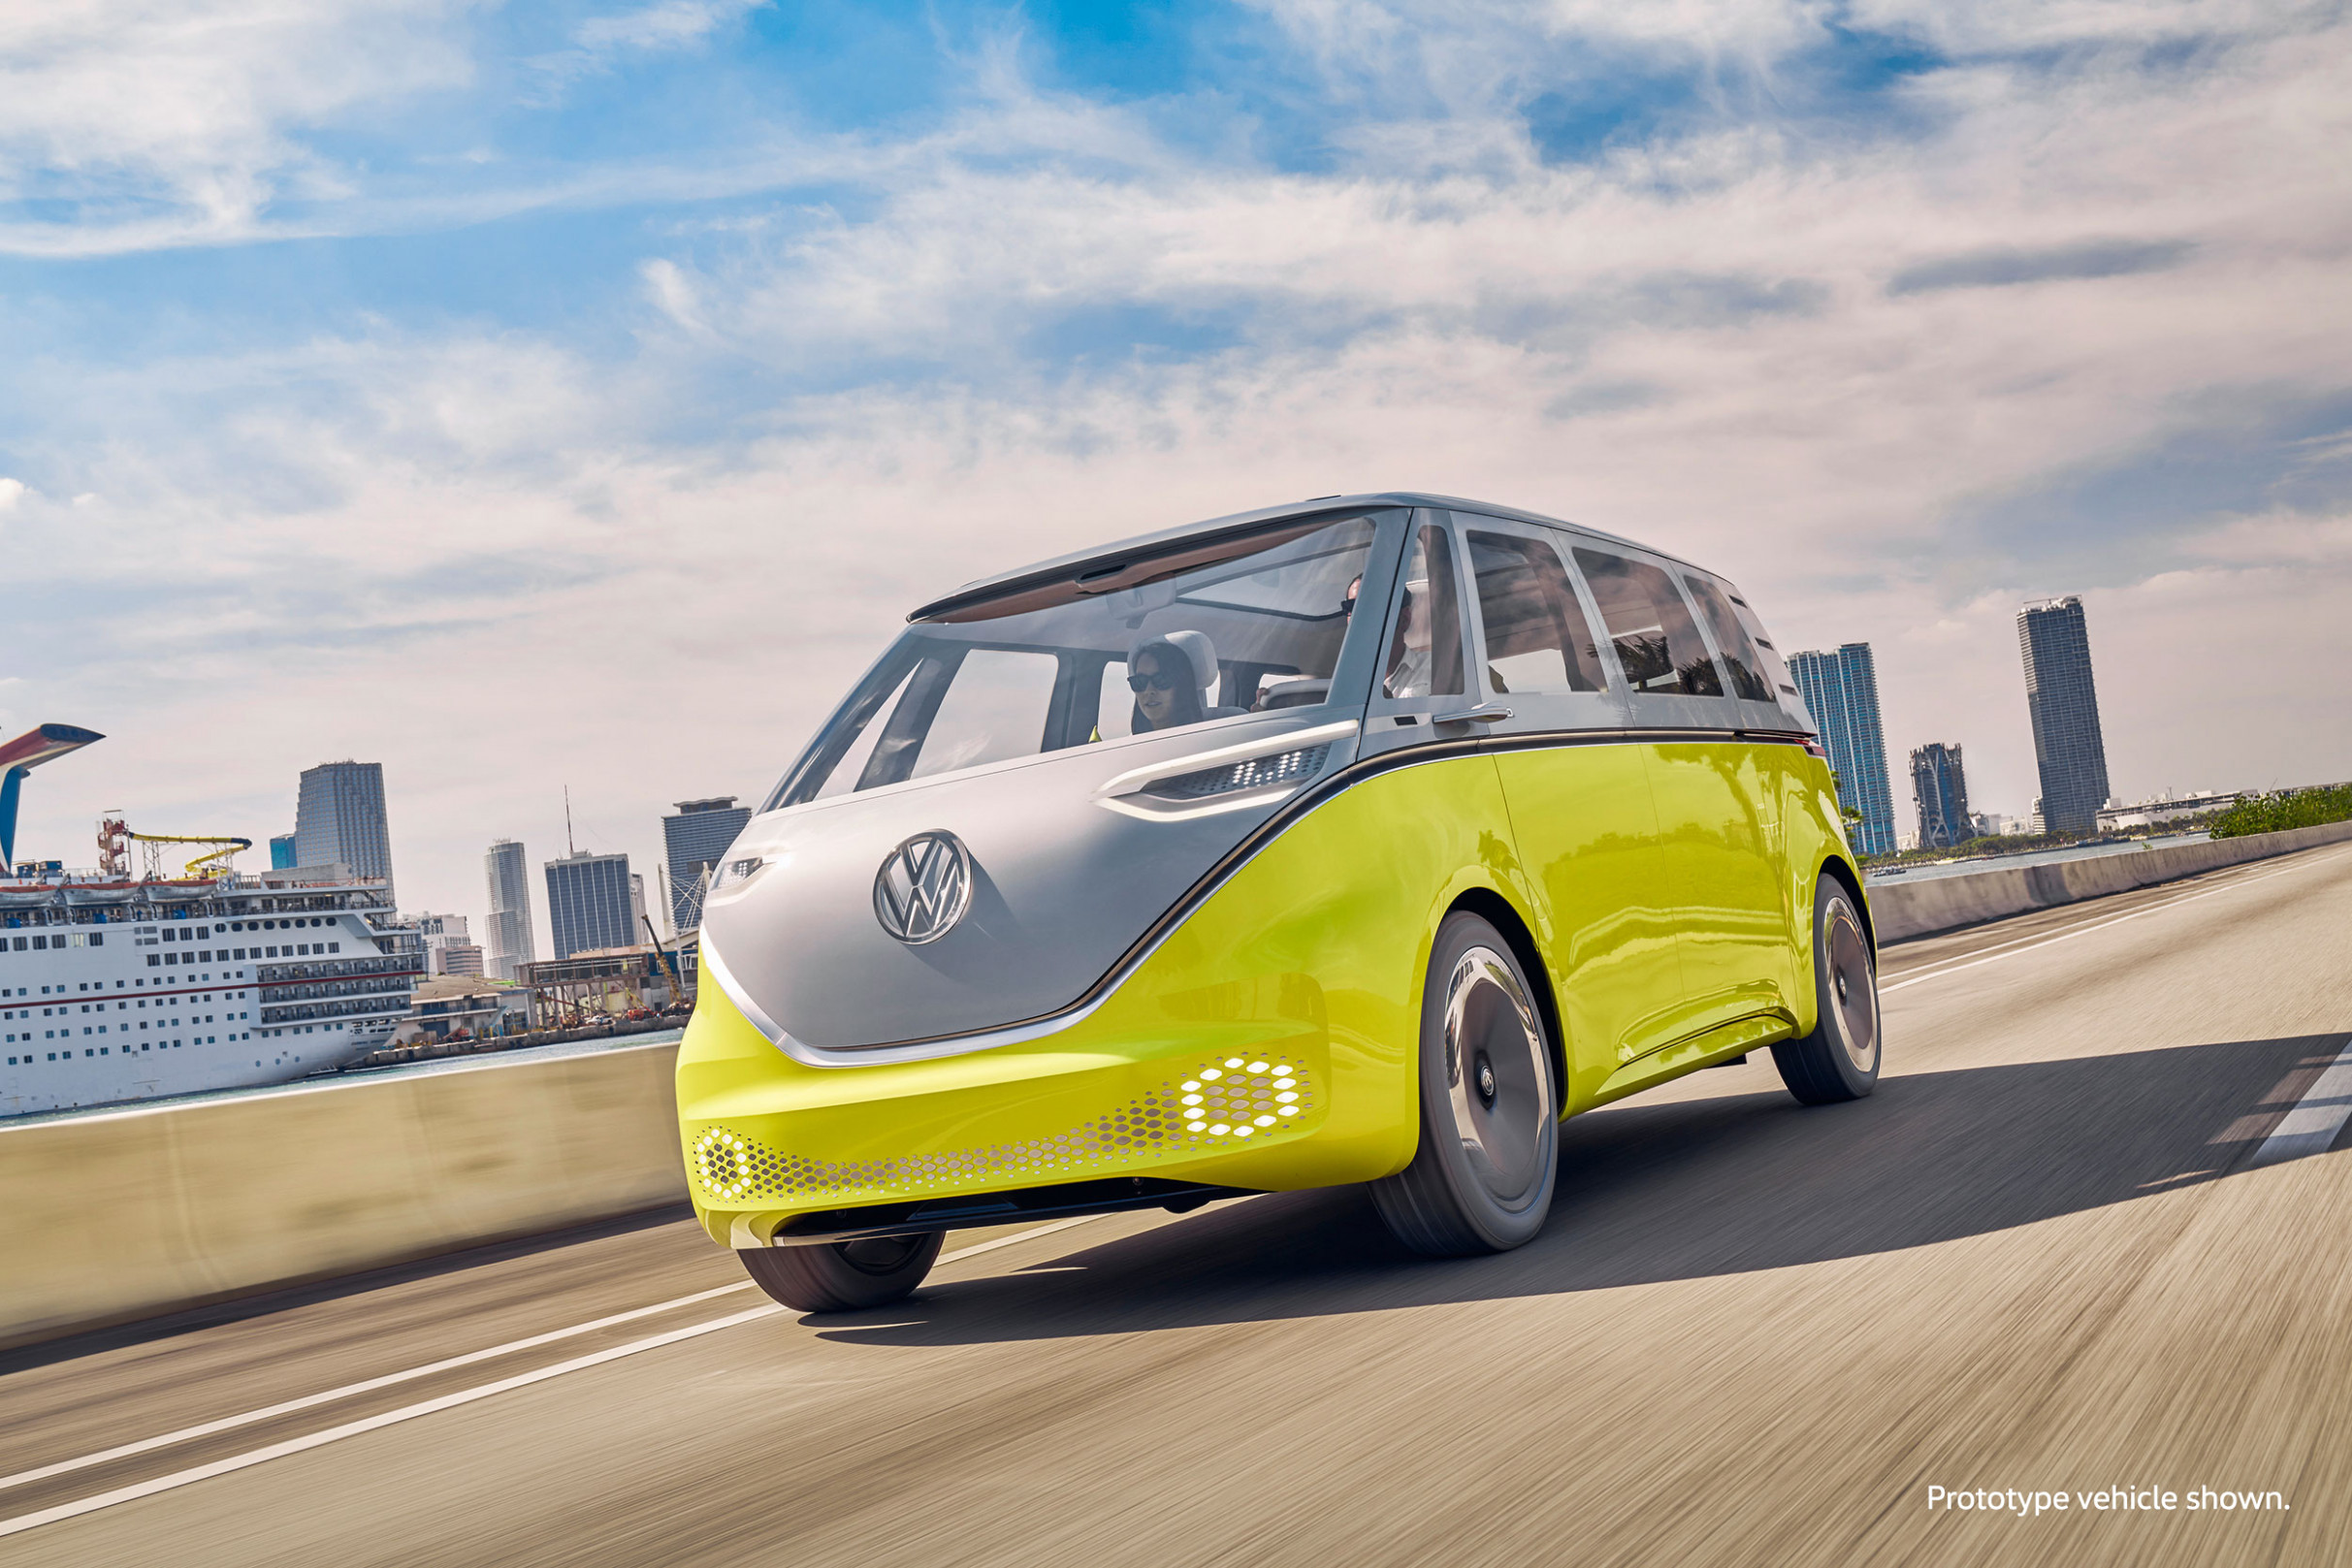 It's official: The VW Bus is back, and it's electric – Newsroom